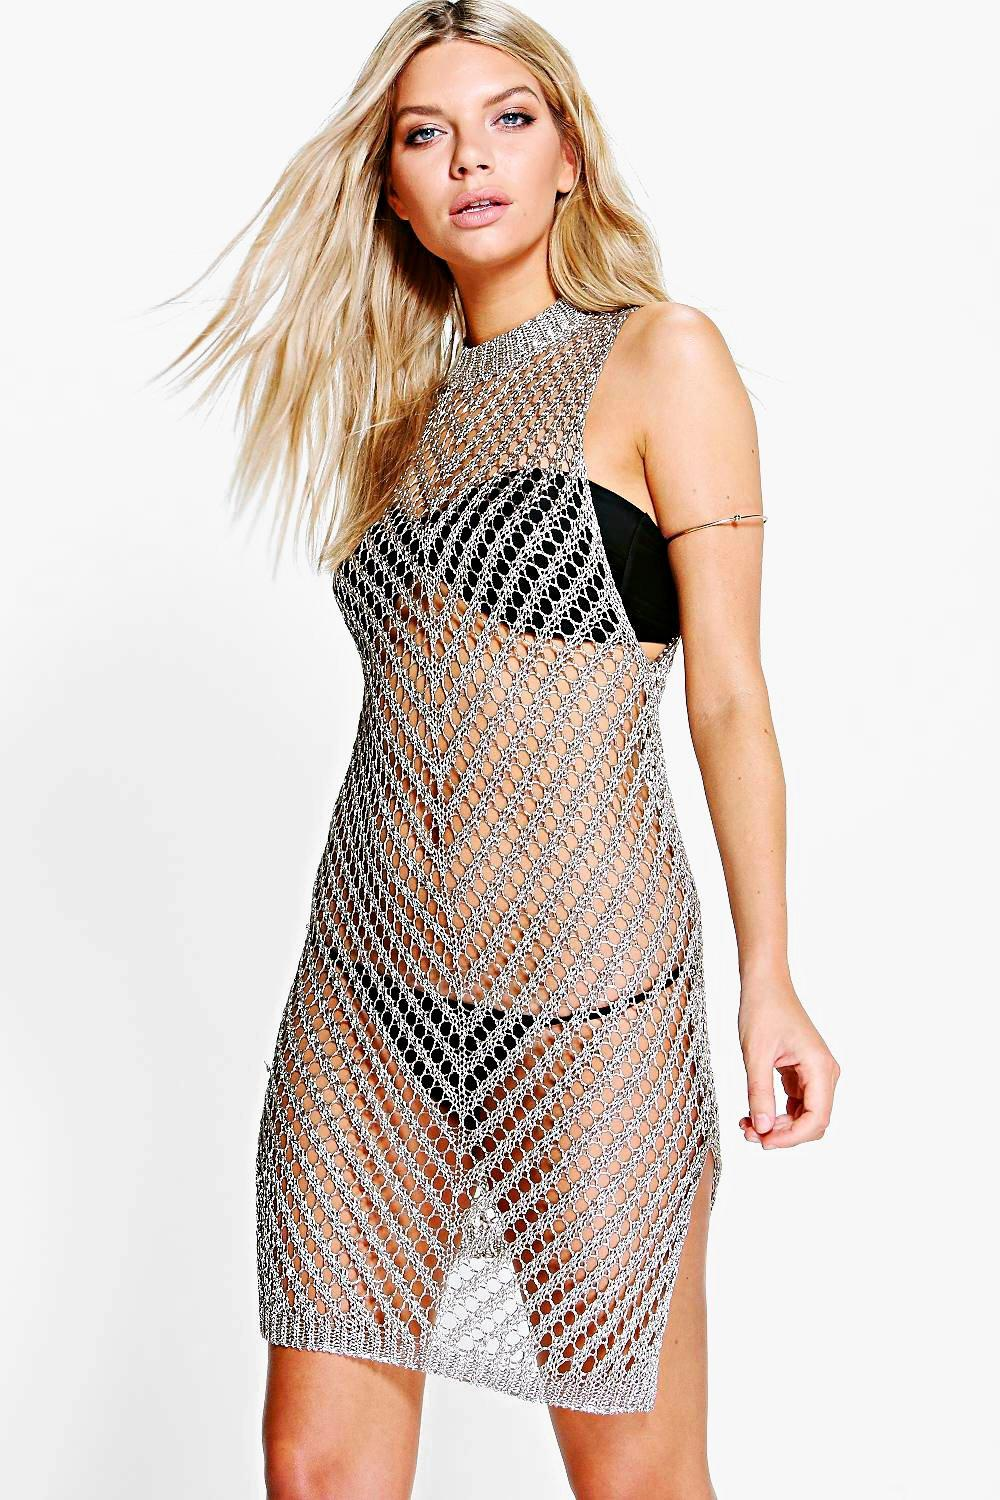 Boutique Matilda Metallic Knit Beach Dress